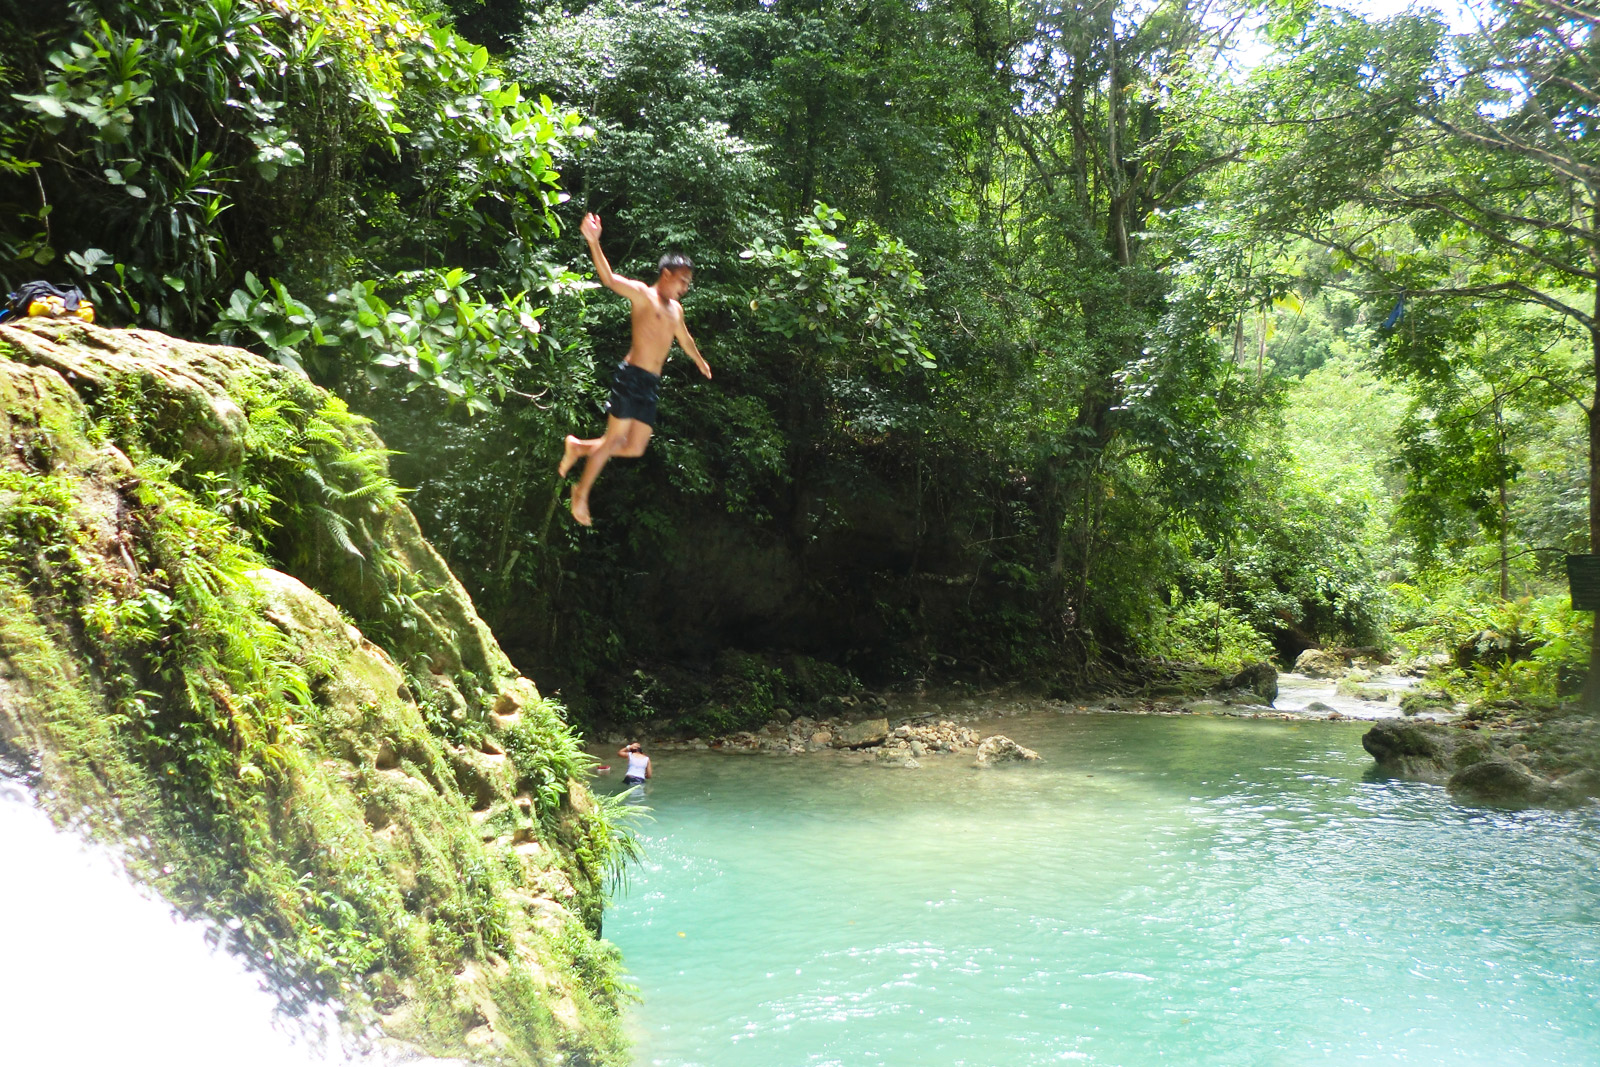 Alegria Philippines  City pictures : Alegria, Cebu: Swim, Bike, Climb | Running stories in Cebu and around ...